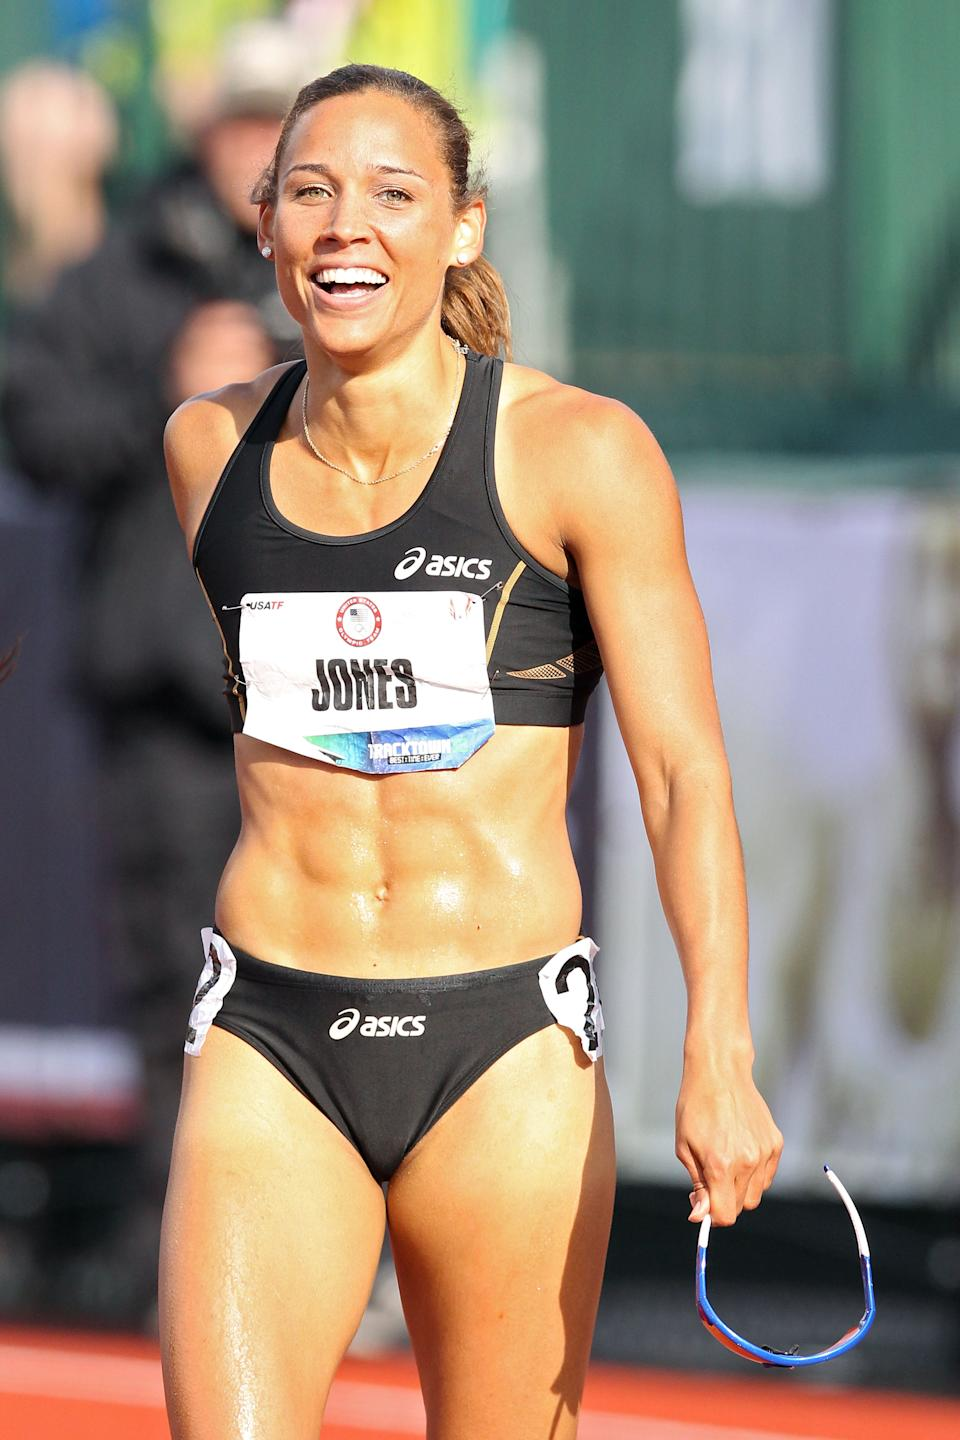 EUGENE, OR - JUNE 23: Lolo Jones reacts after qualifying for 2012 Olympics after coming in third in the women's 100 meter hurdles final during Day Two of the 2012 U.S. Olympic Track & Field Team Trials at Hayward Field on June 23, 2012 in Eugene, Oregon. (Photo by Christian Petersen/Getty Images)